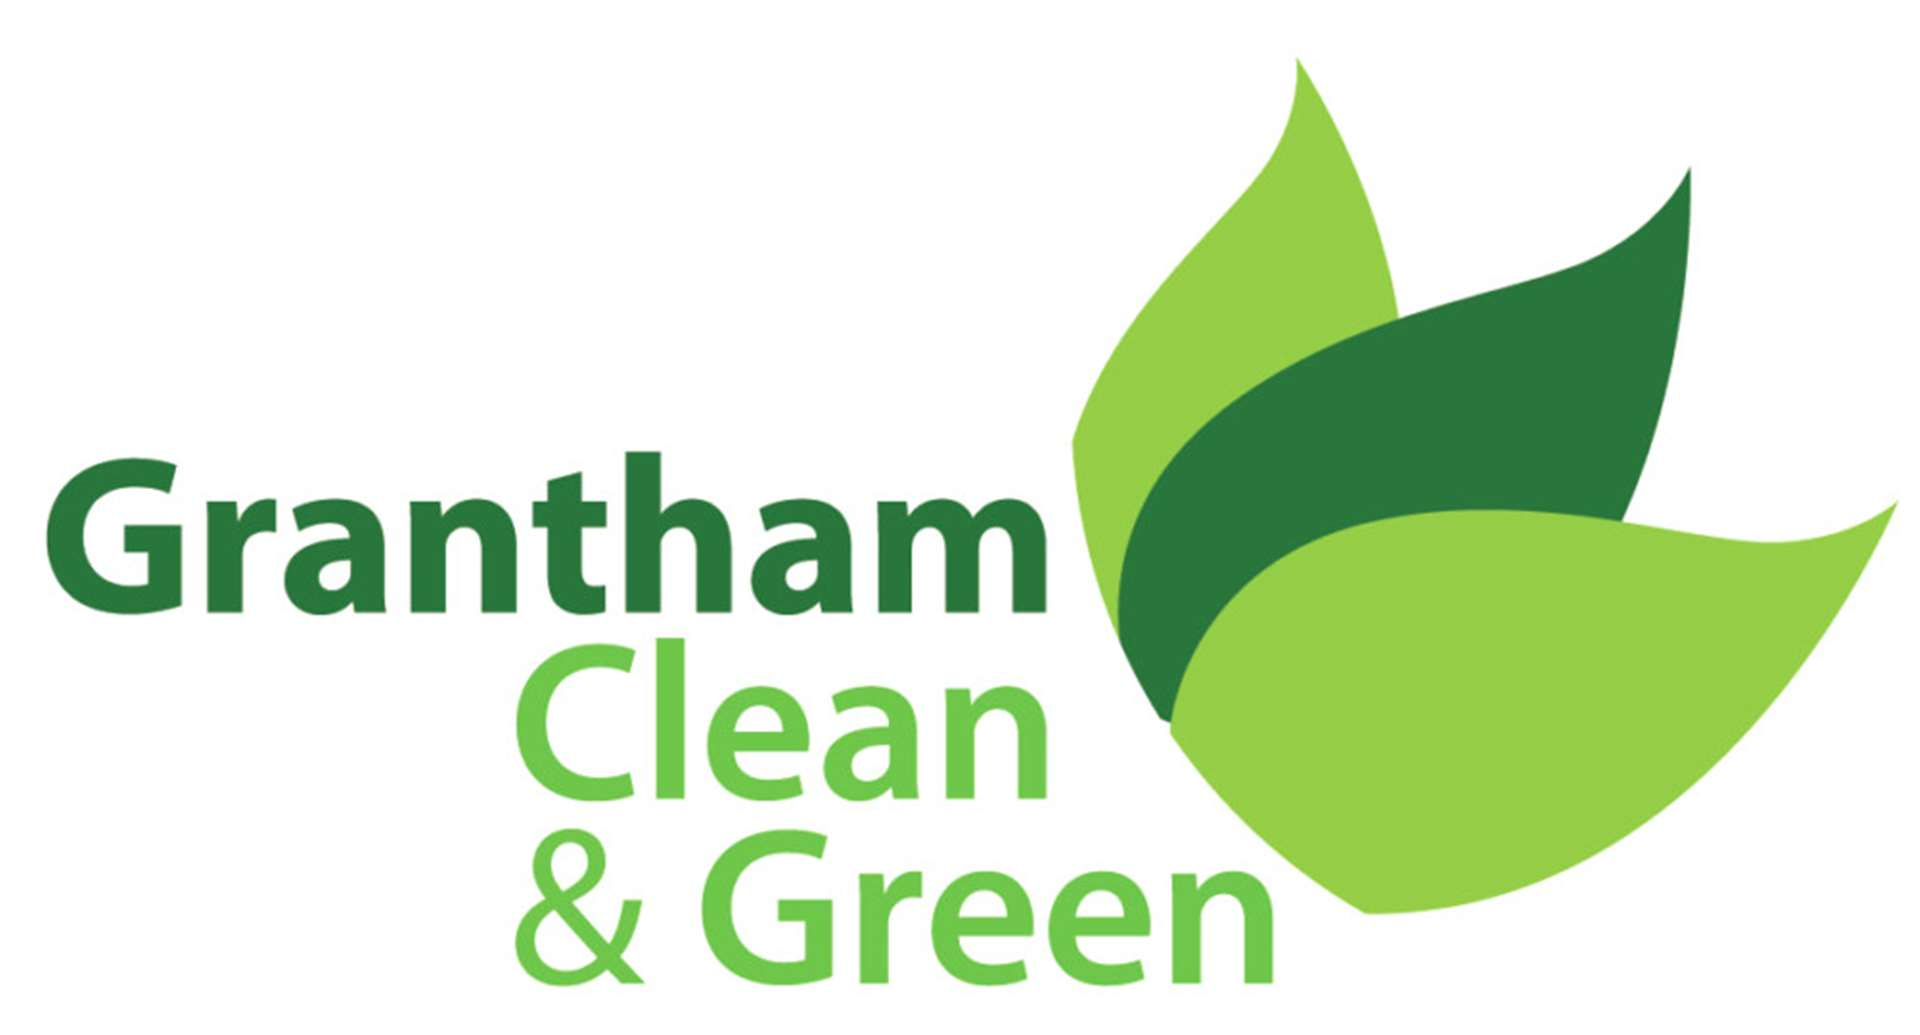 Grantham Clean and Green: Garden waste should only go in green bins